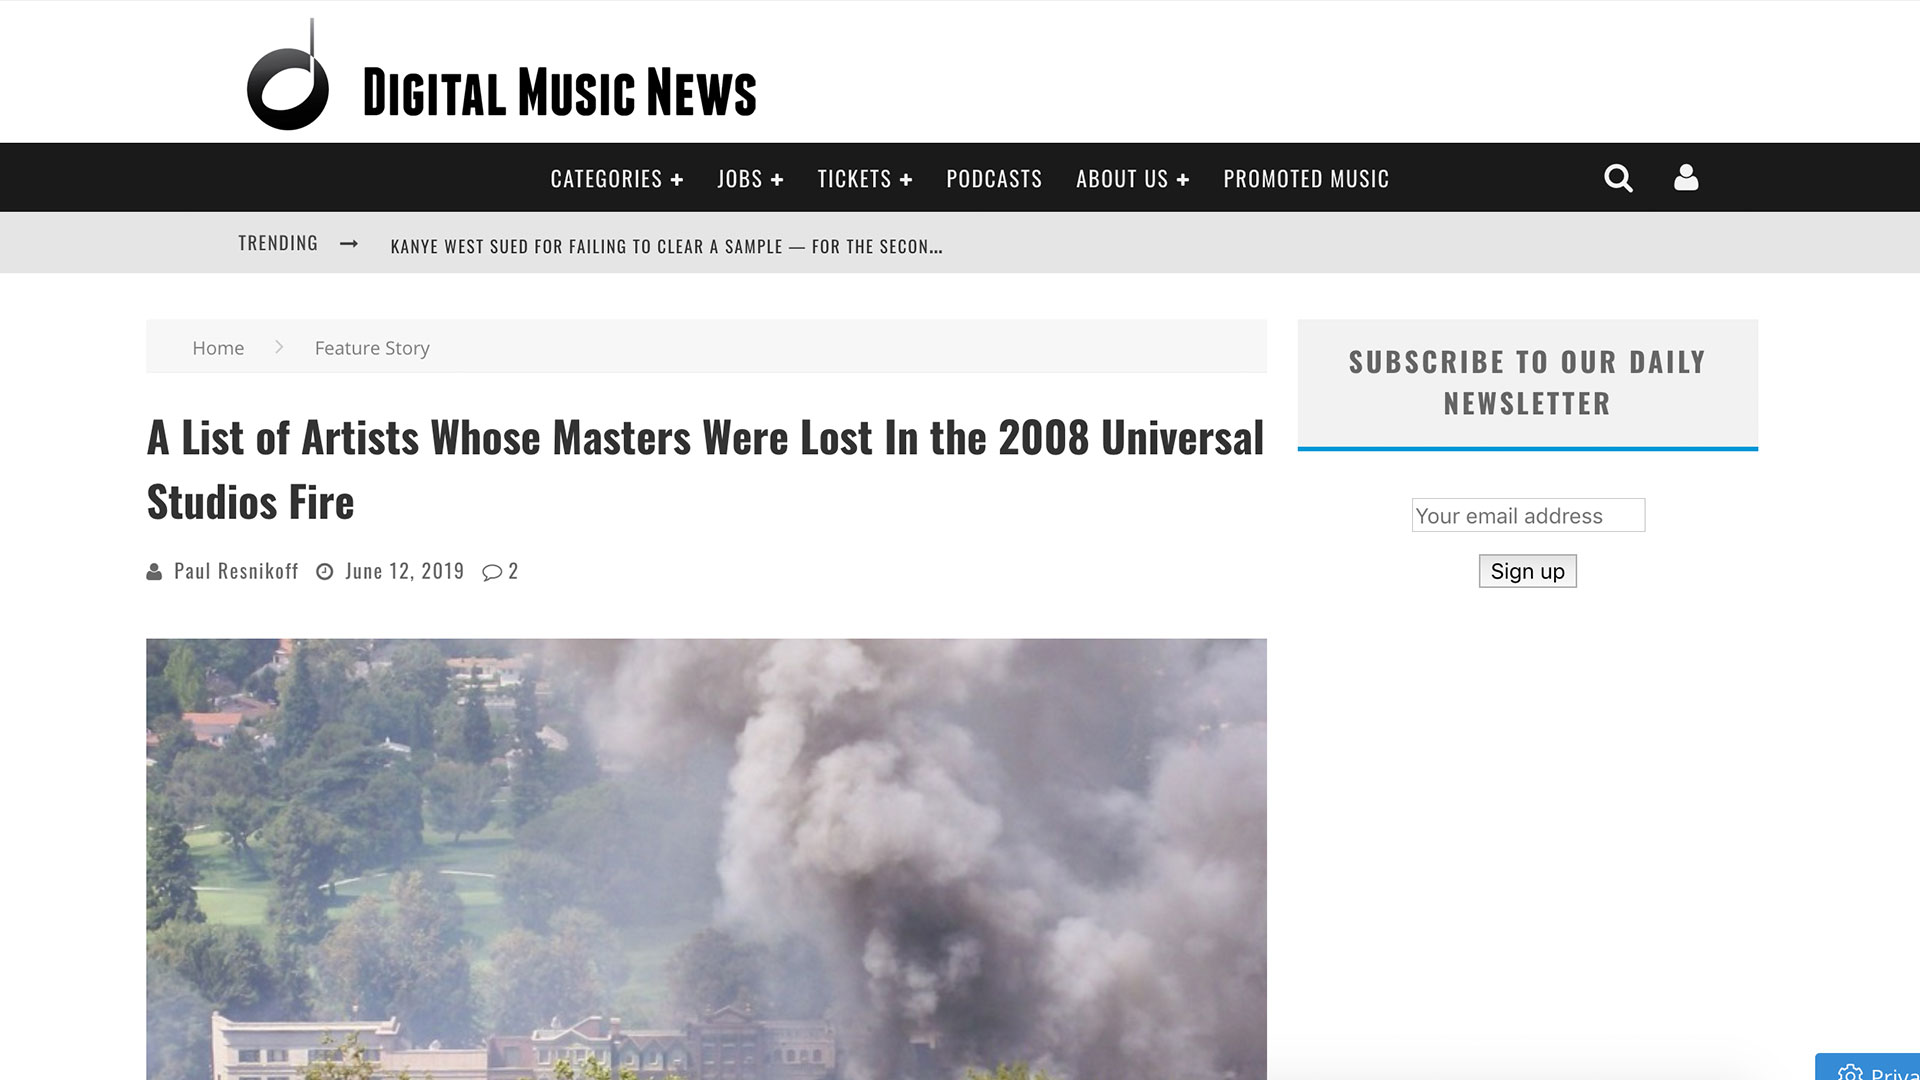 Fairness Rocks News A List of Artists Whose Masters Were Lost In the 2008 Universal Studios Fire